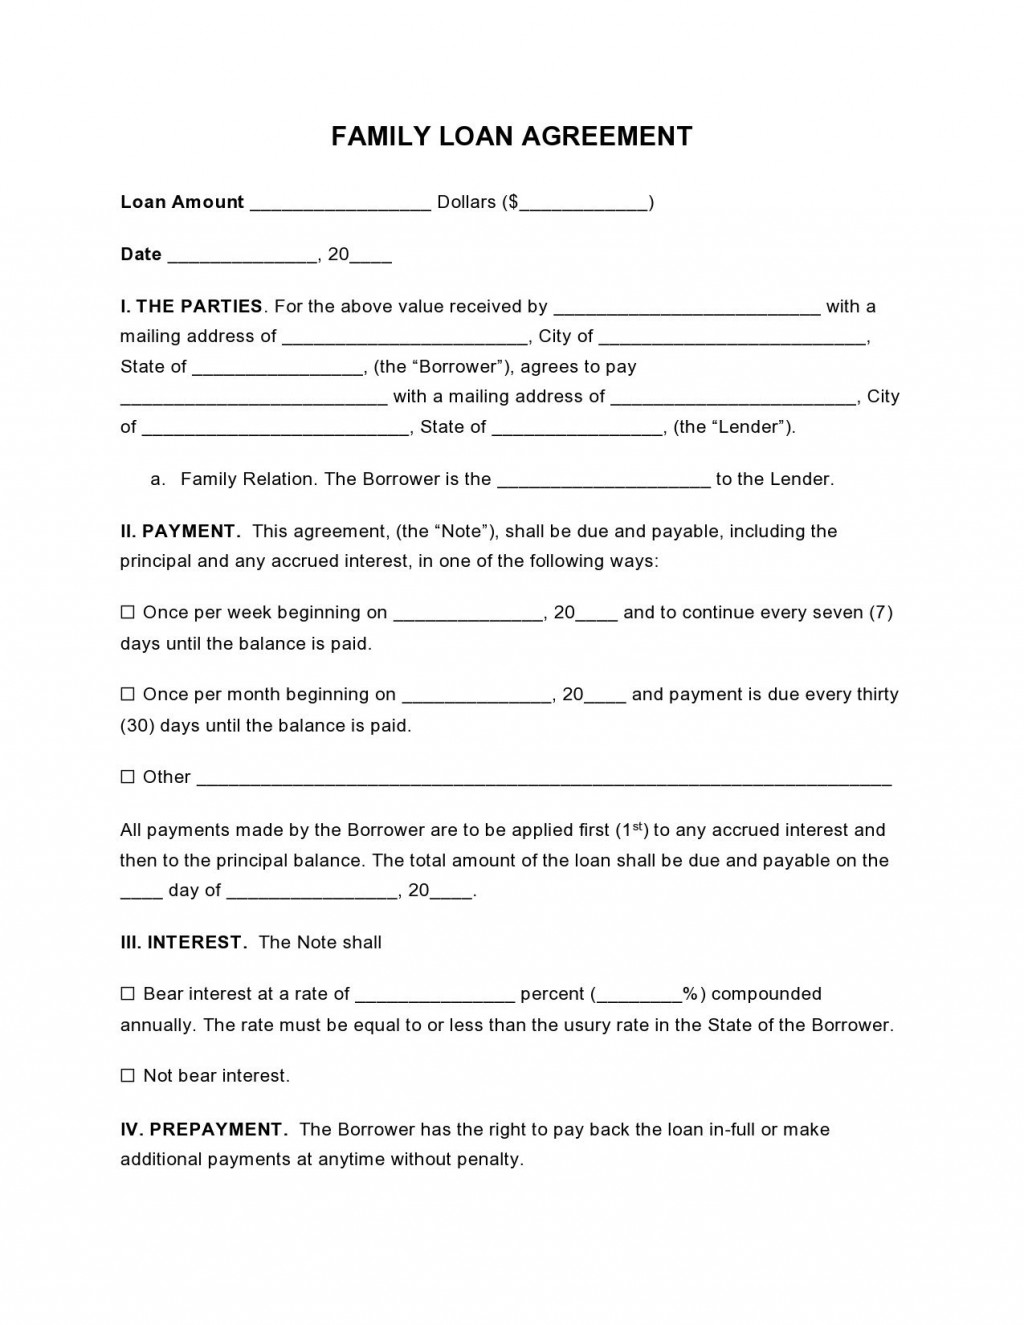 000 Wondrou Free Family Loan Agreement Template Nz High Definition Large